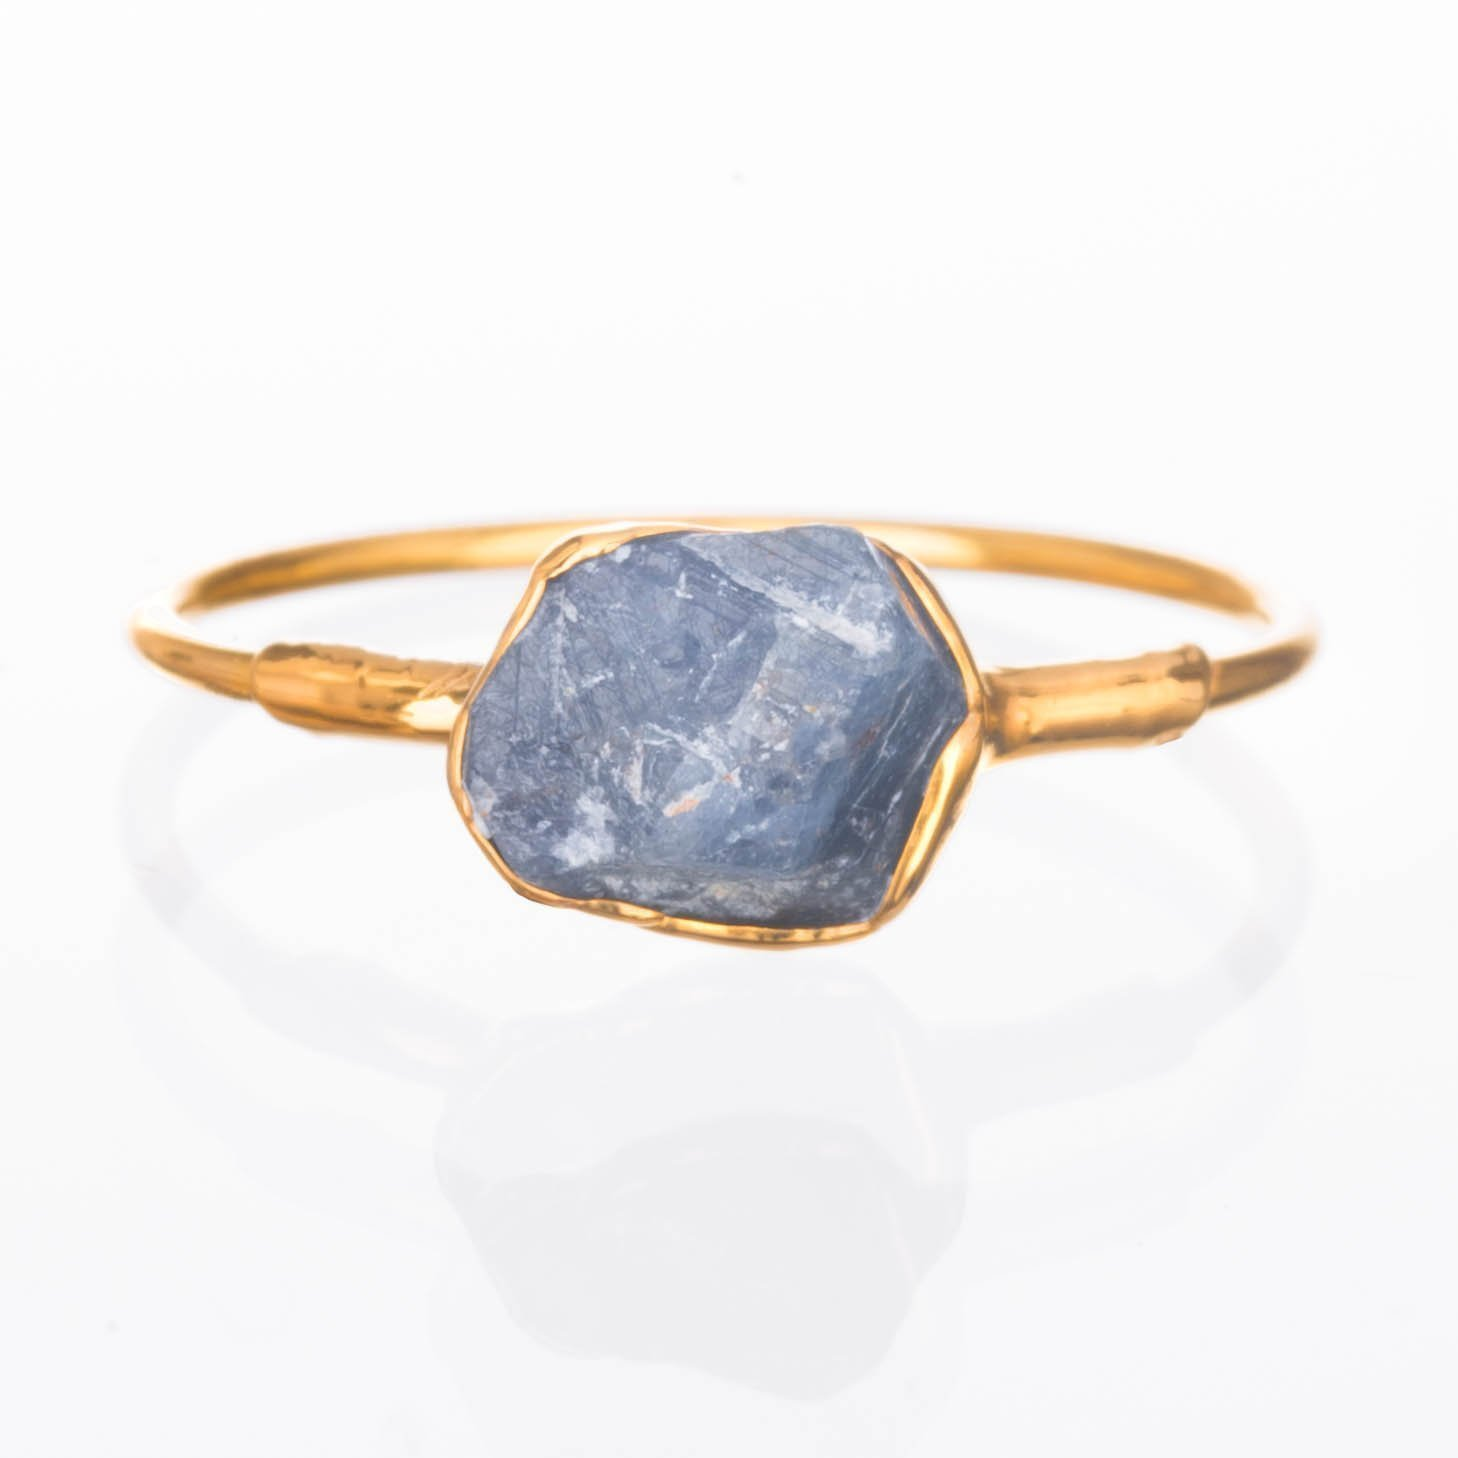 Raw Sapphire Ring, Size 8, 14k Gold Filled, September Birthstone